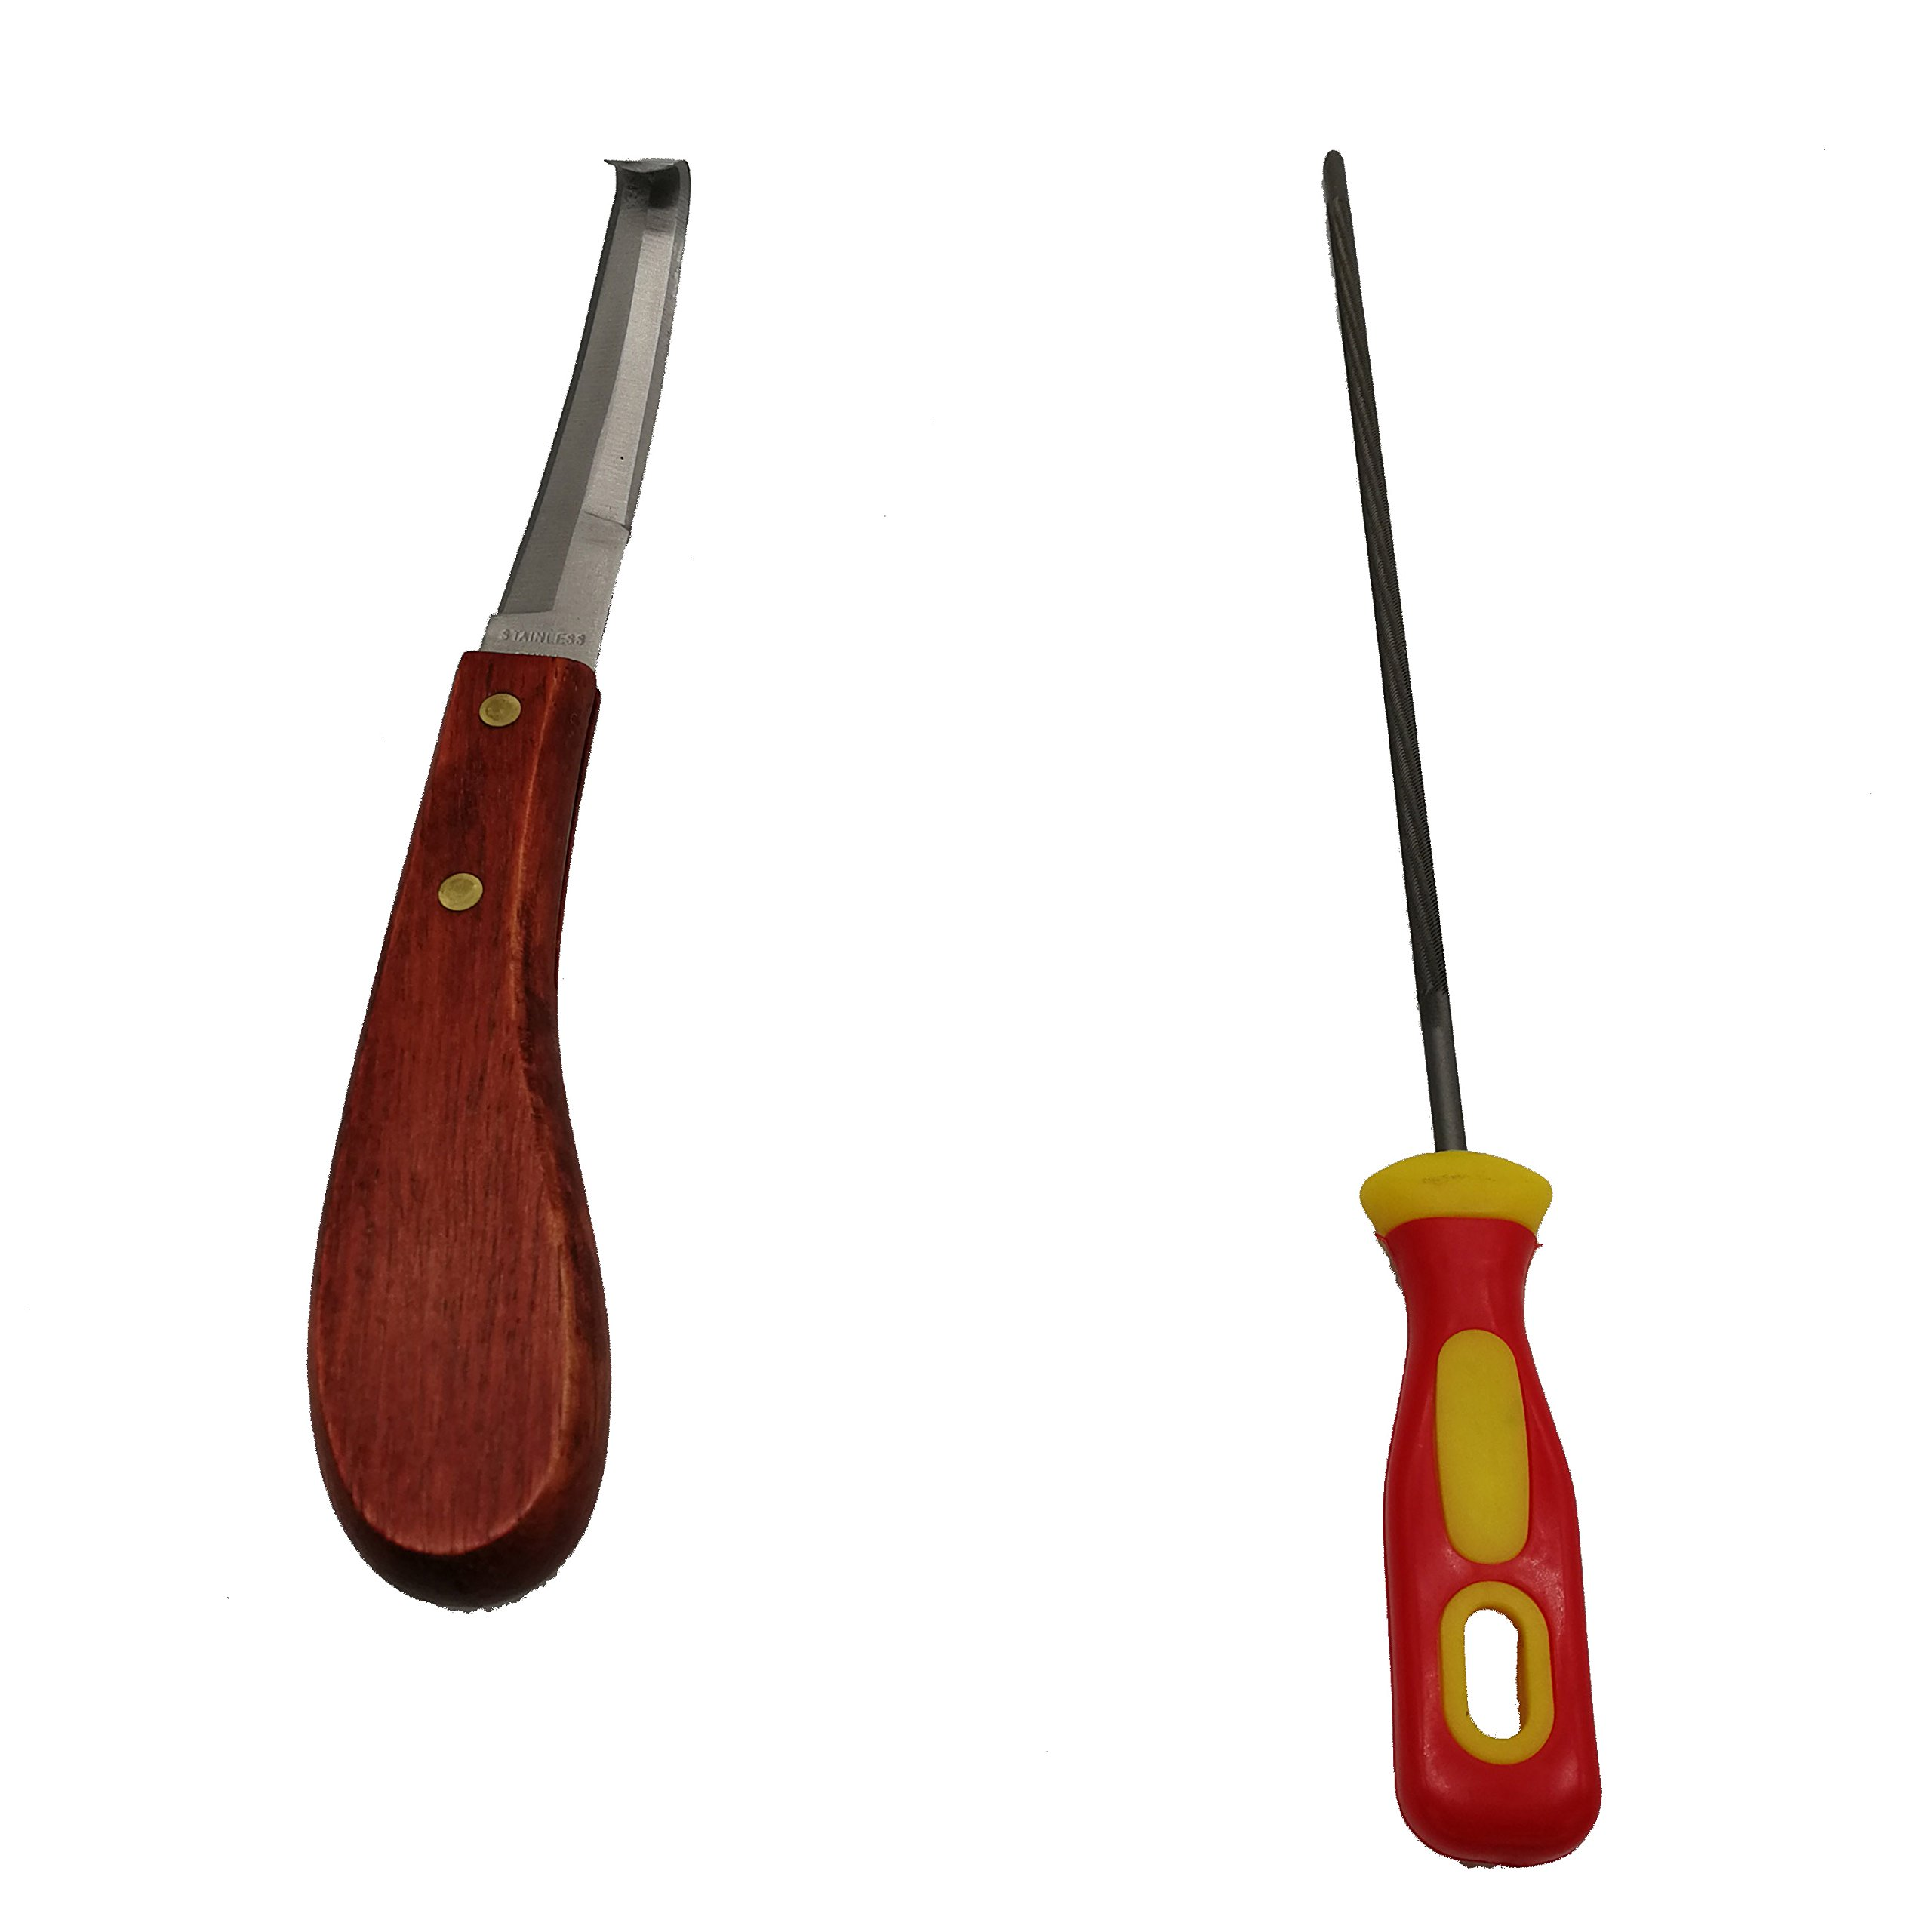 Wooden Handle Stainless Steel Blade Double Edge Cattle and Horse Hoof Knife Shears Cutter with Knife Sharper